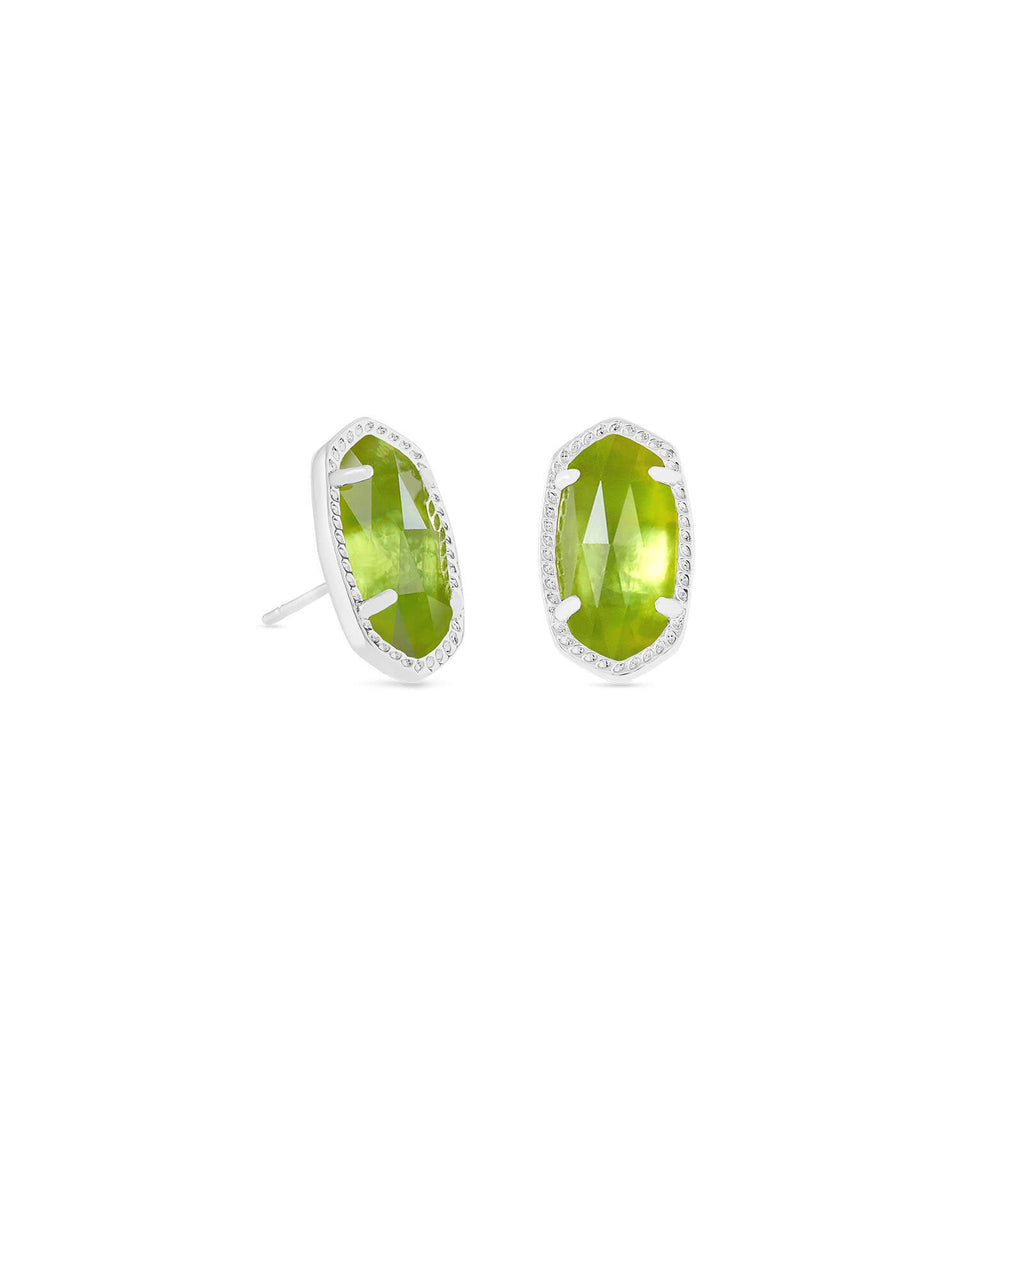 Kendra Scott Ellie Silver Stud Earrings In Peridot August Birthstone - Fly Boutique